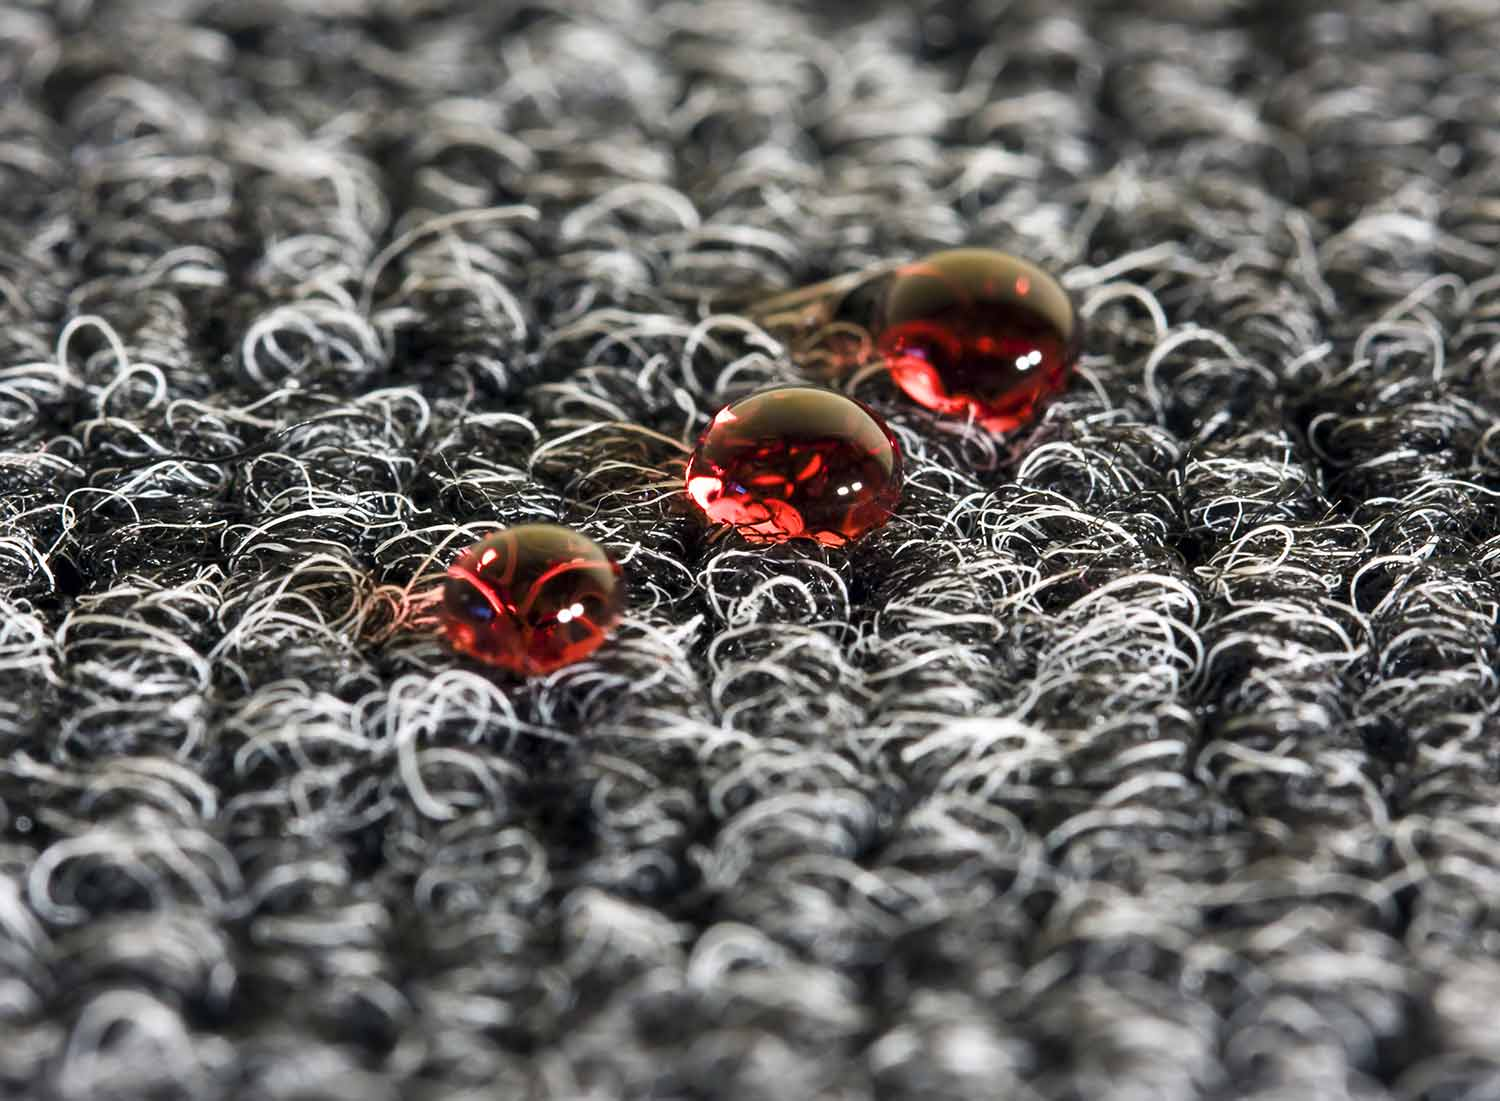 Droplets of wine on a carpet are no match for the professional and skilled workers at All Convention Cleaners.